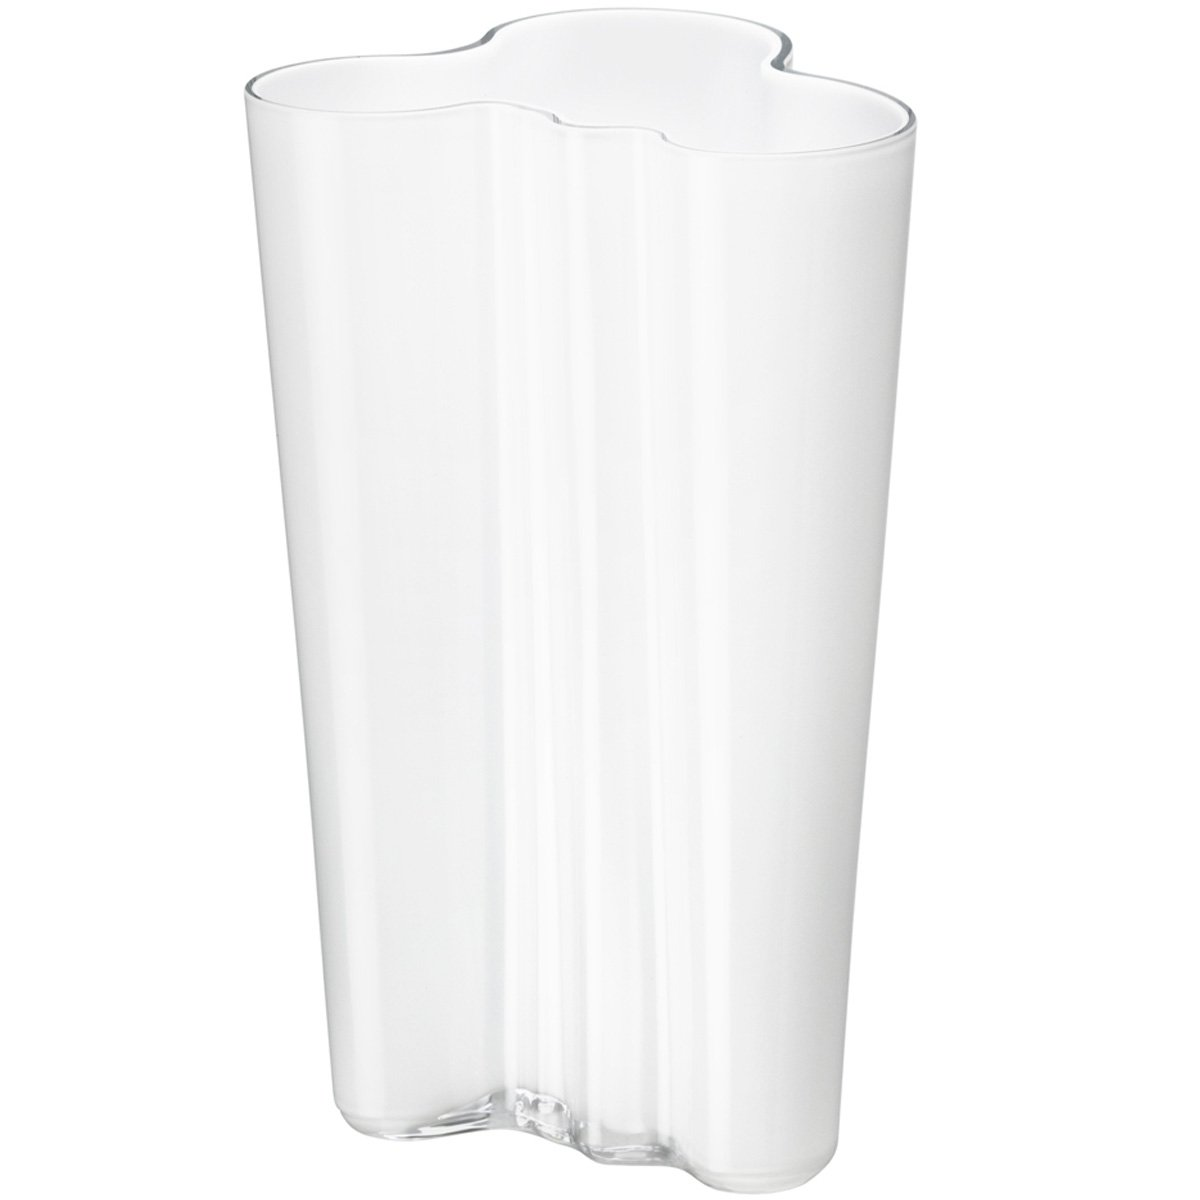 Iittala Alvar Aalto Collection Finlandia Vase 9.75'' White by Iittala